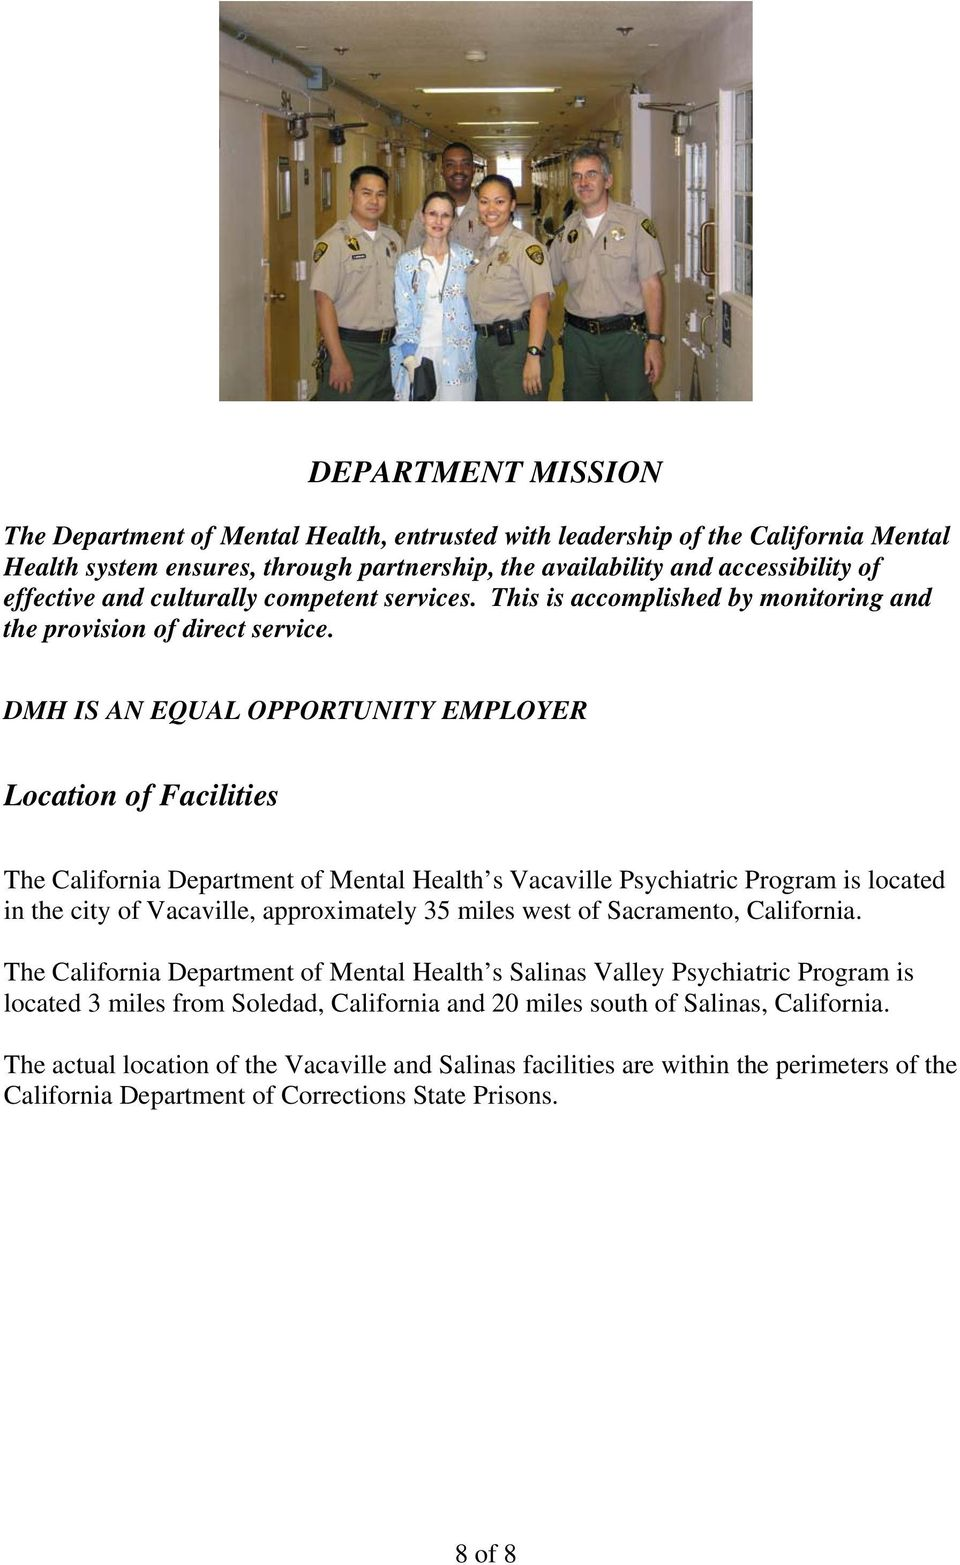 DMH IS AN EQUAL OPPORTUNITY EMPLOYER Location of Facilities The California Department of Mental Health s Vacaville Psychiatric Program is located in the city of Vacaville, approximately 35 miles west